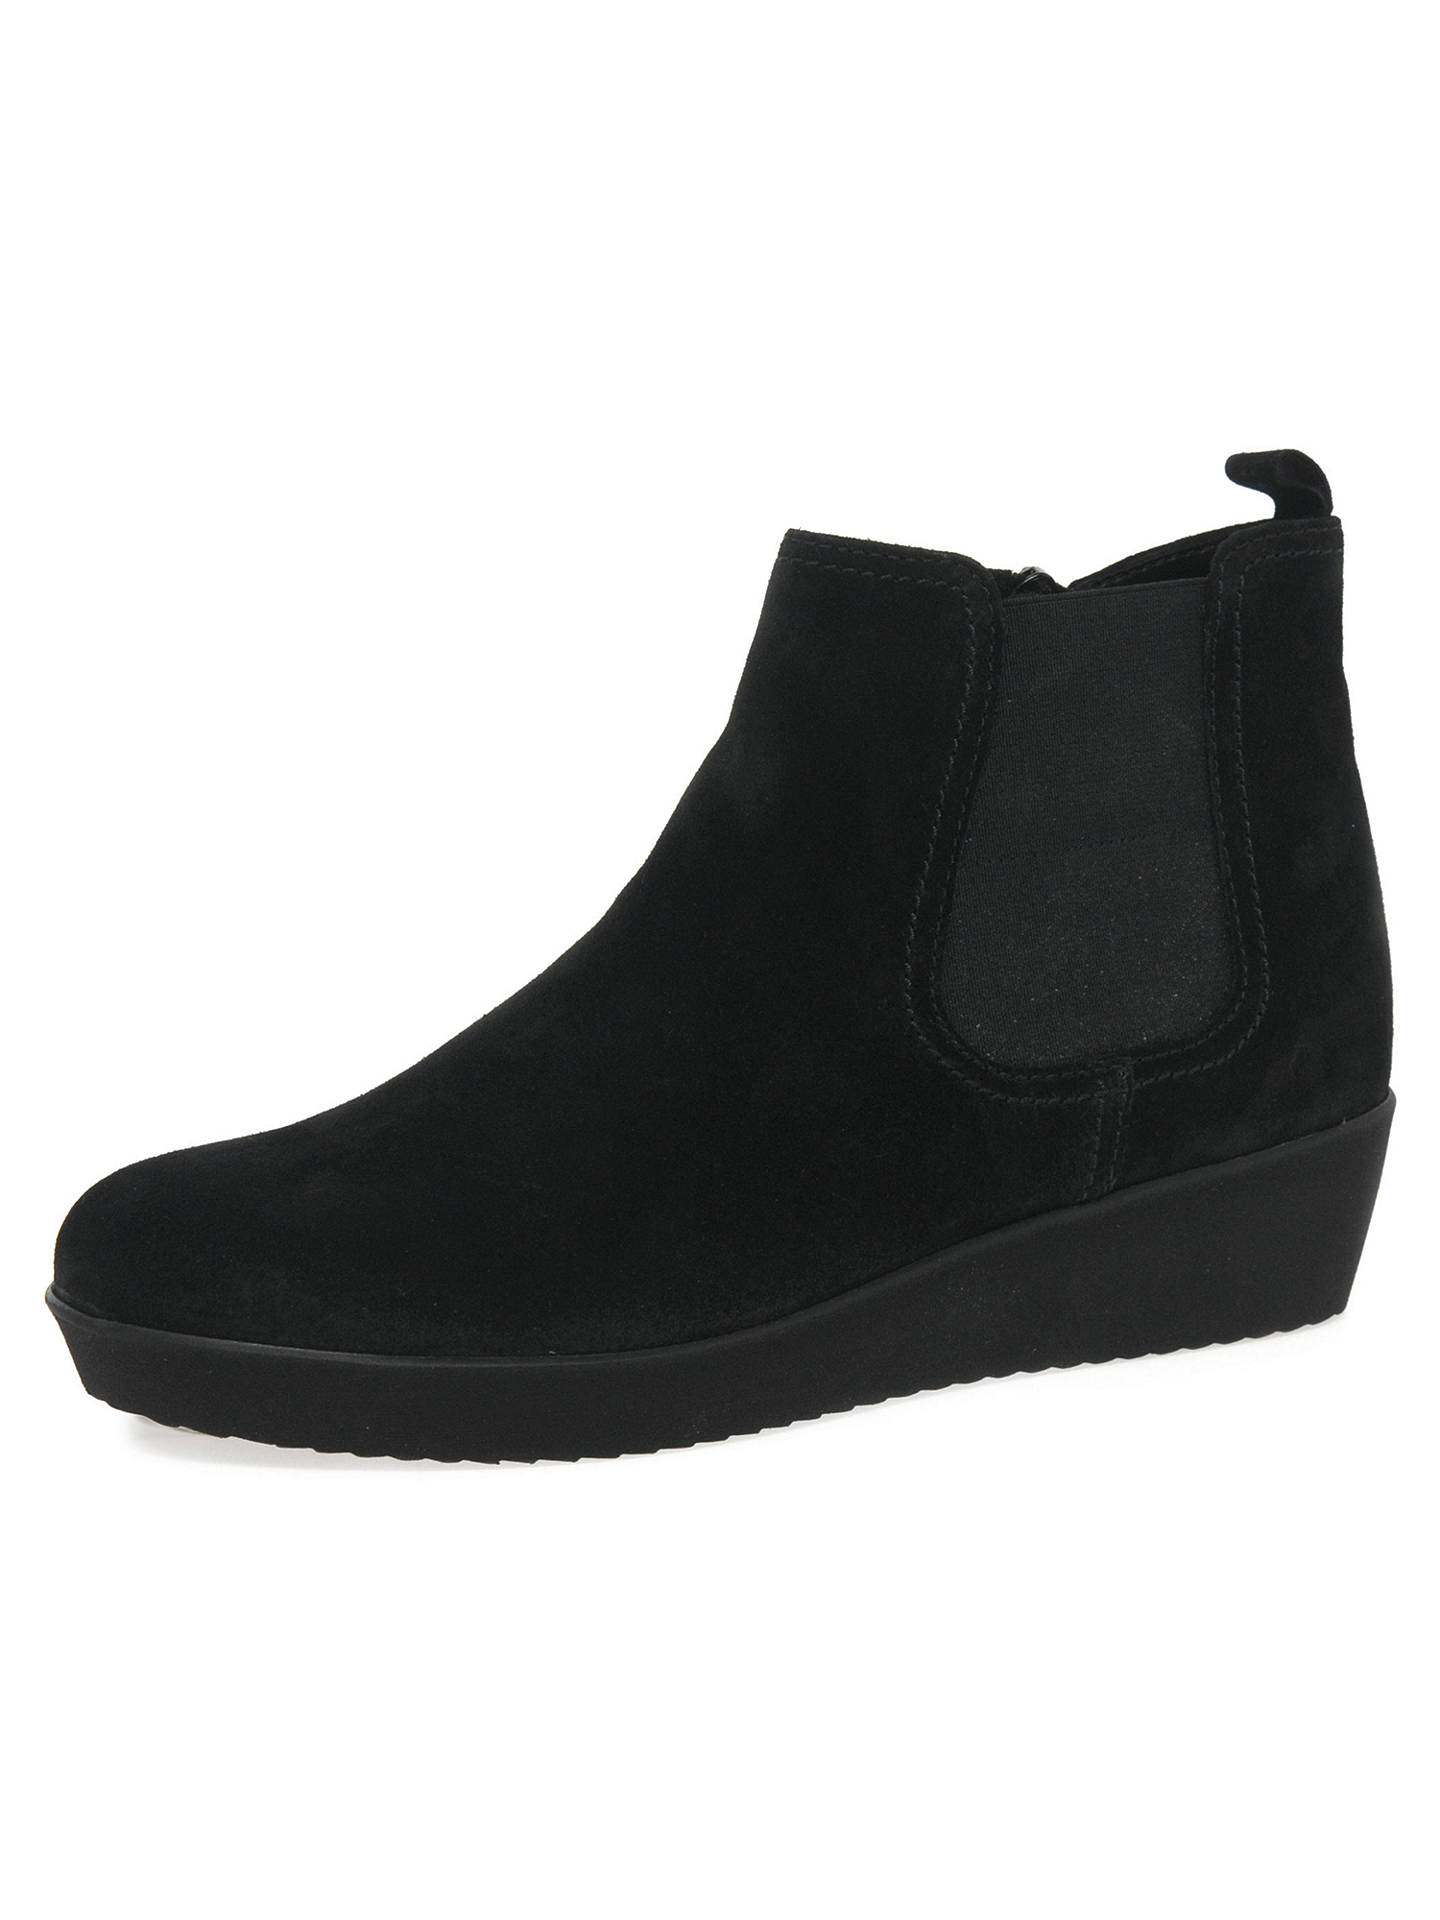 6ee3319ad71 Gabor Ghost Wide Fit Ankle Chelsea Boots, Black at John Lewis & Partners